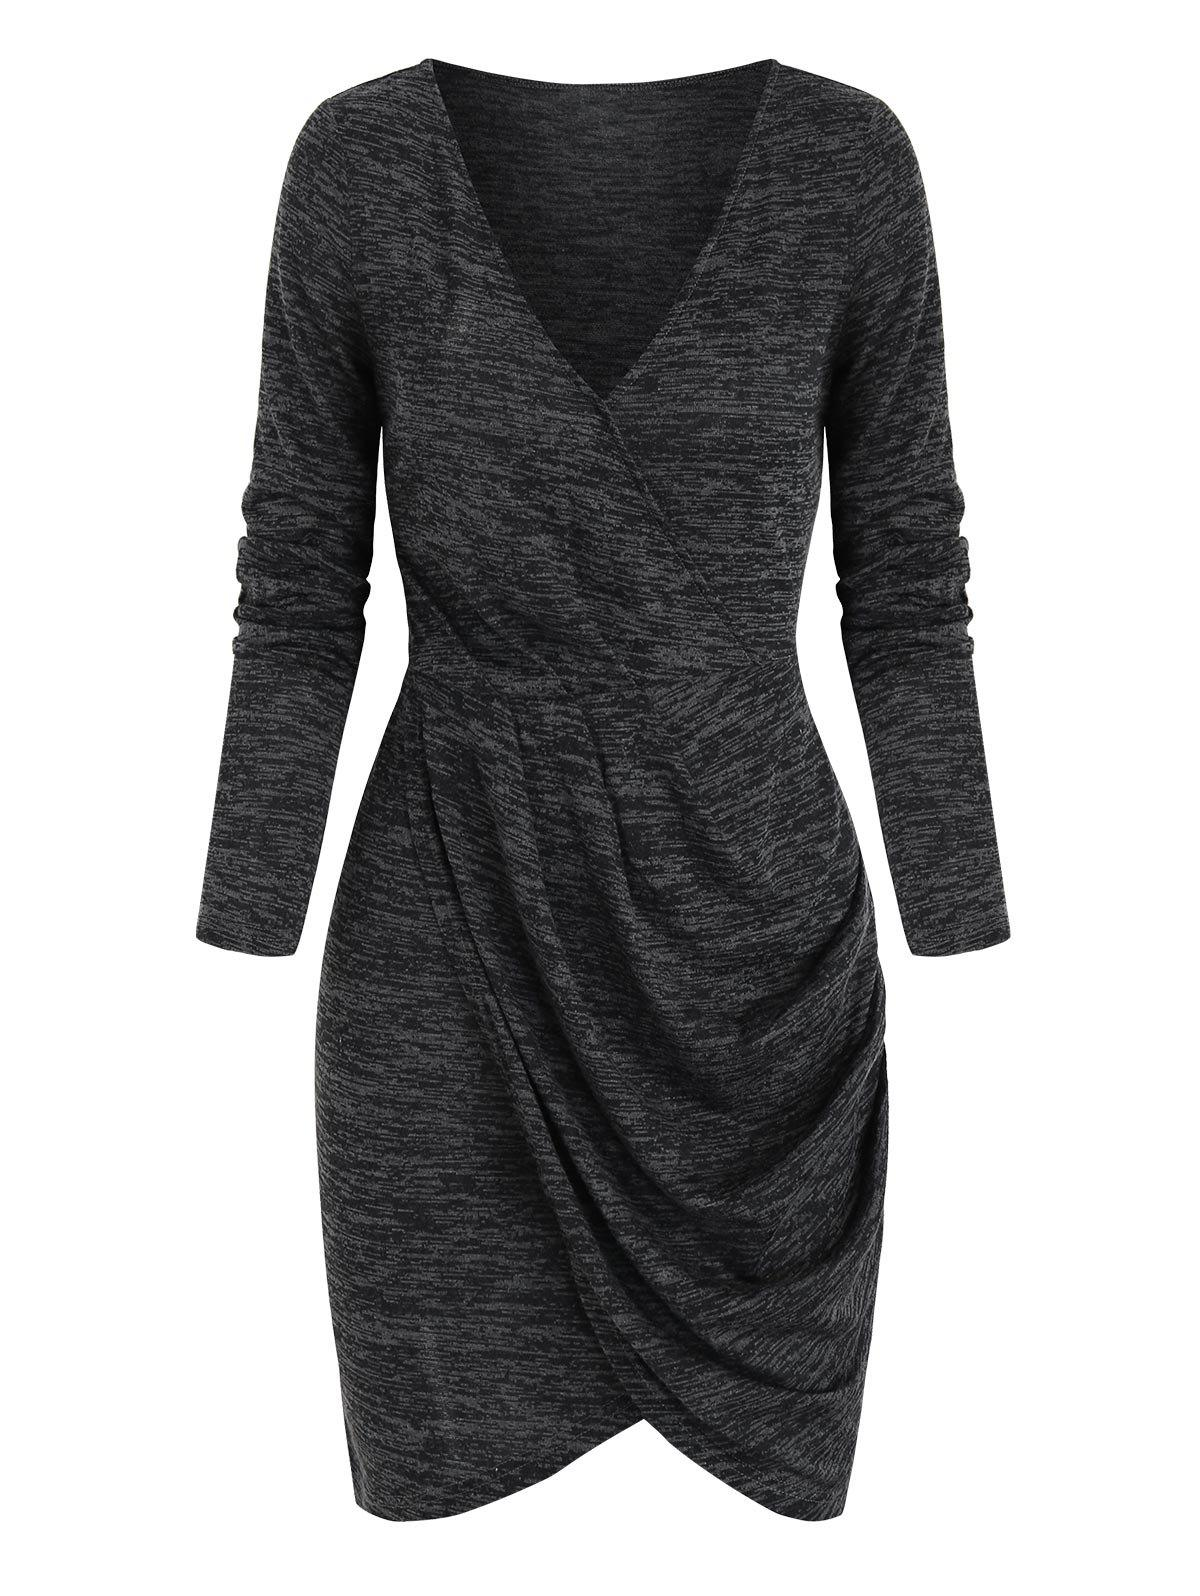 Space Dye Print Long Sleeve Tulip Dress - CARBON GRAY 3XL